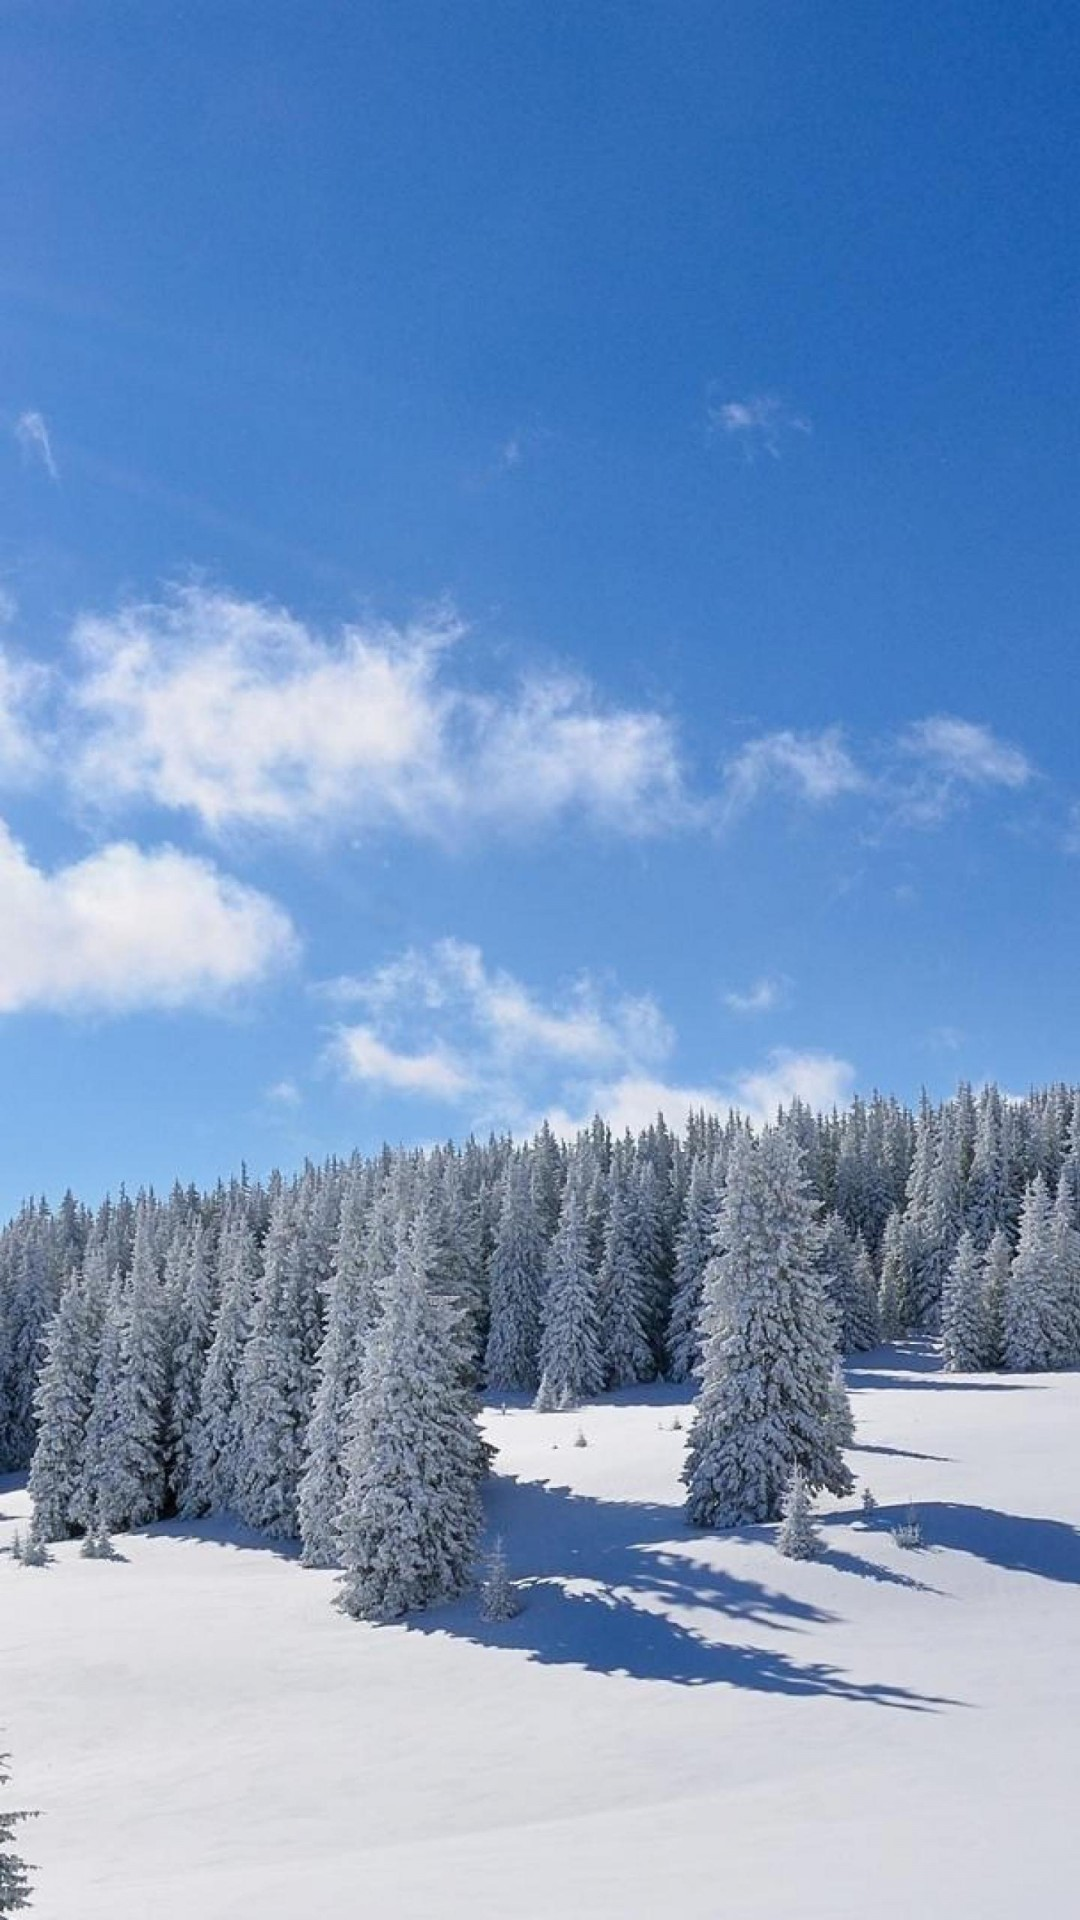 Winter Background Wallpapers on